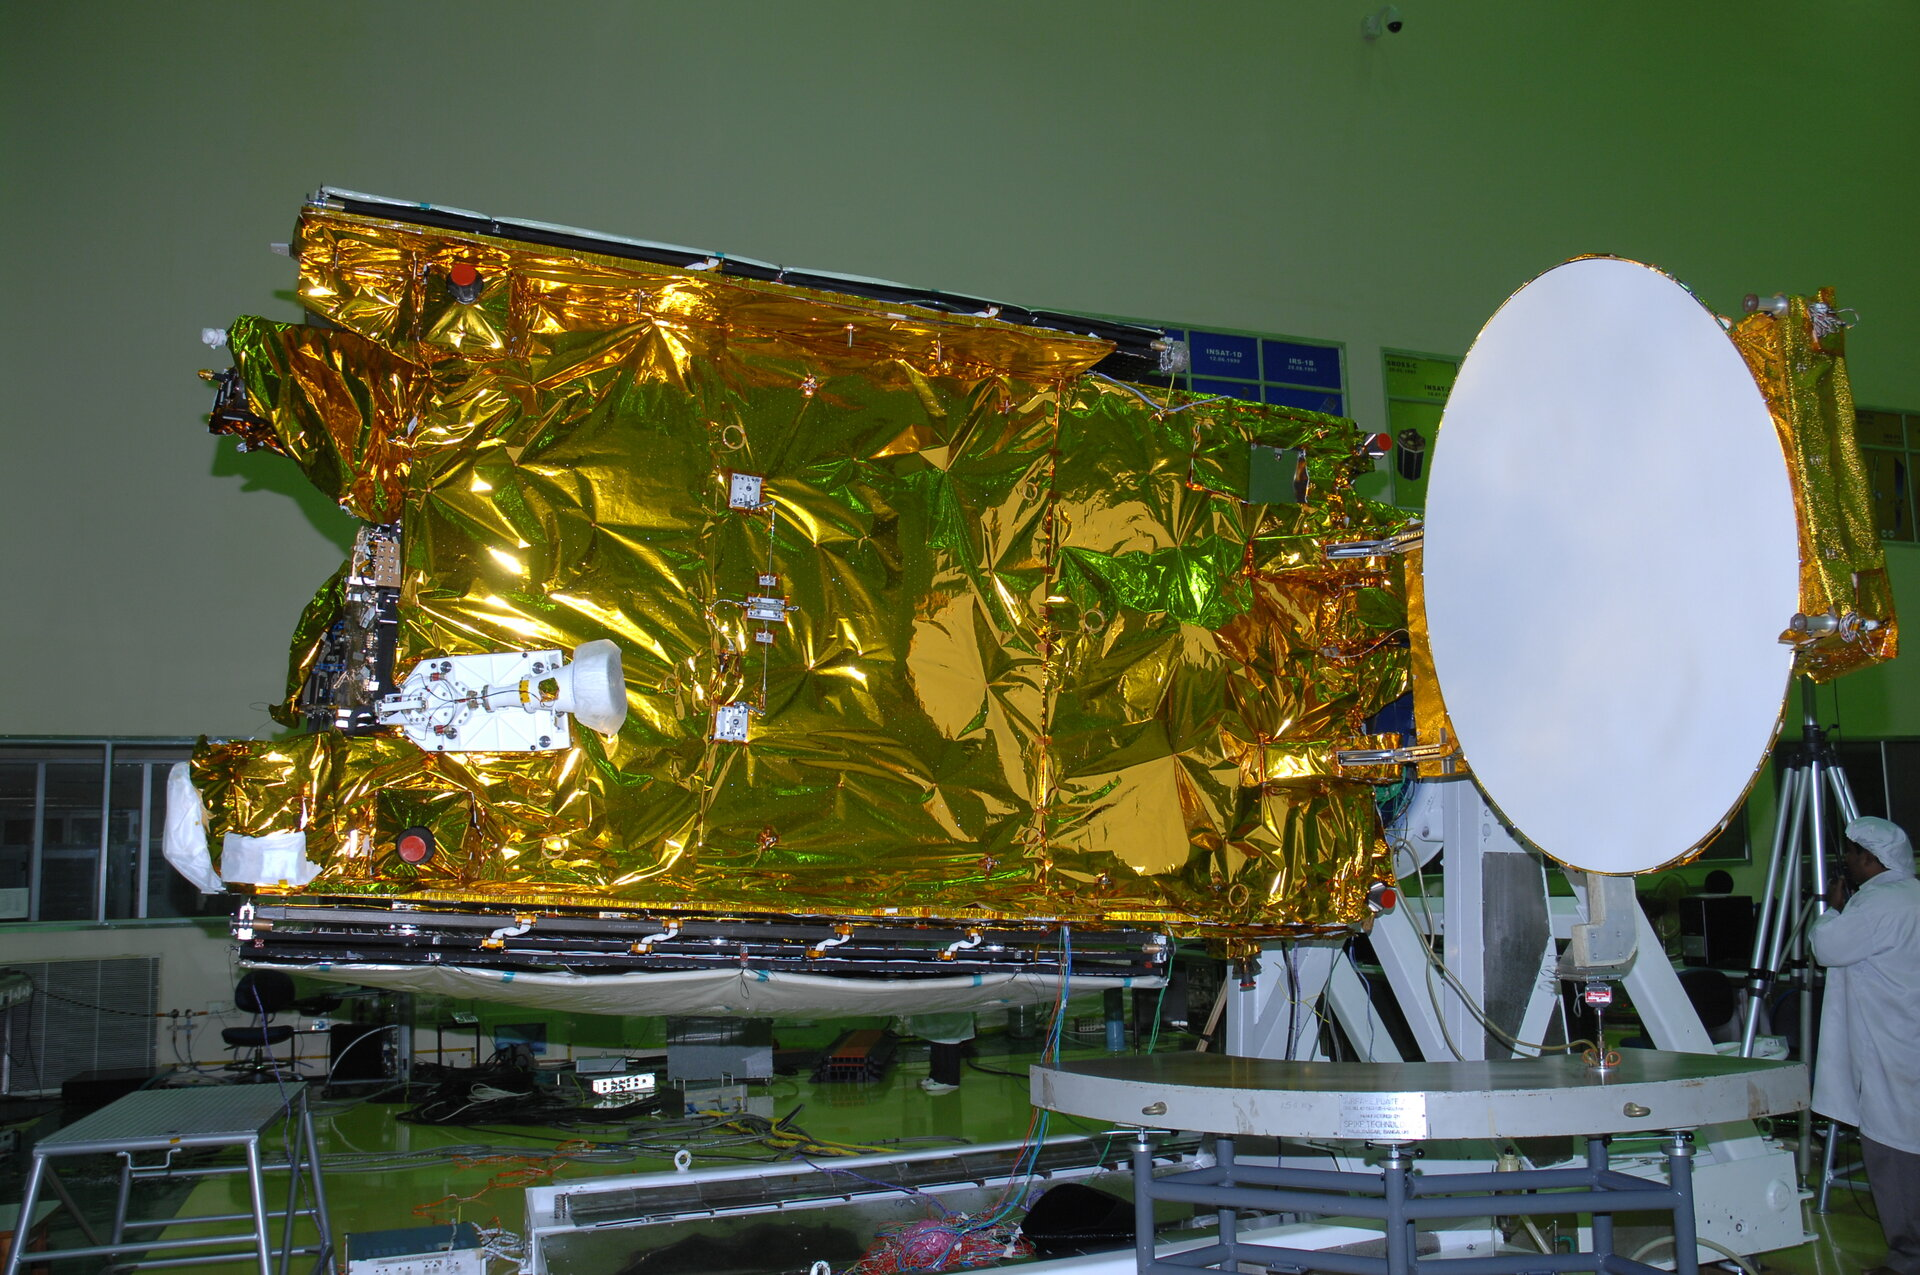 Hylas-1 Ku-band antenna